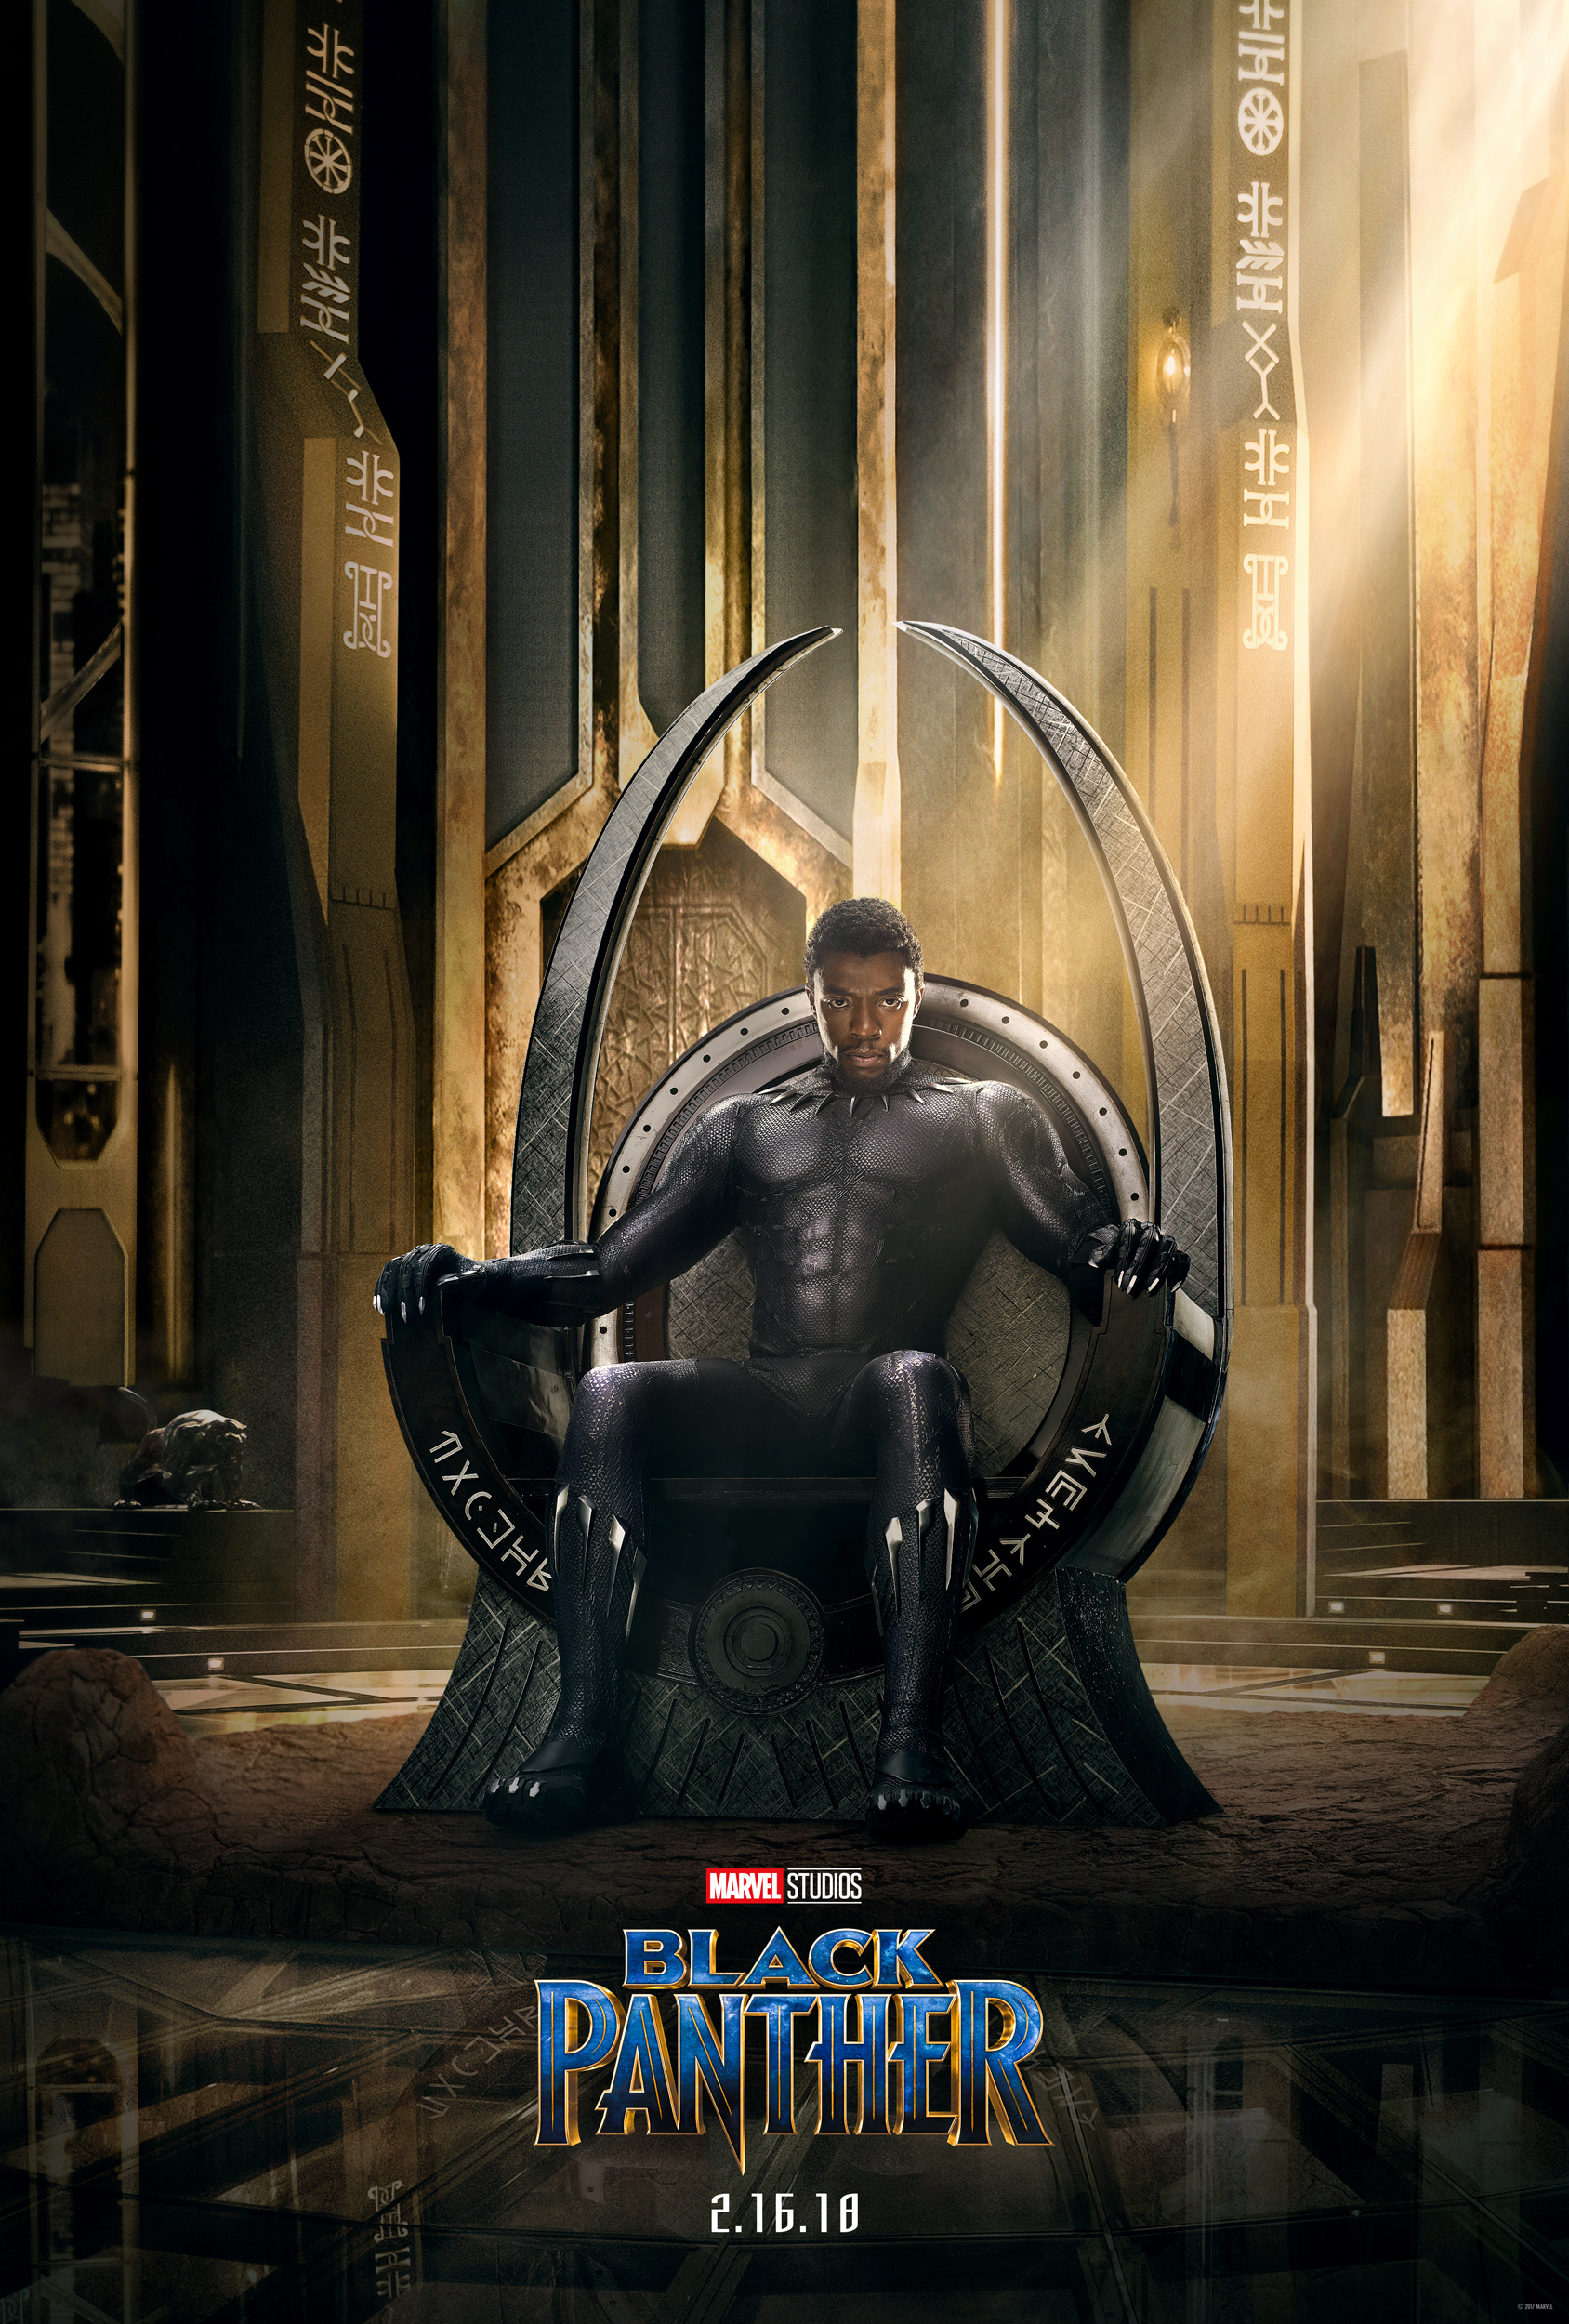 « Black Panther » de Marvel n'est pas un simple super-héros Noir #afrofuturism